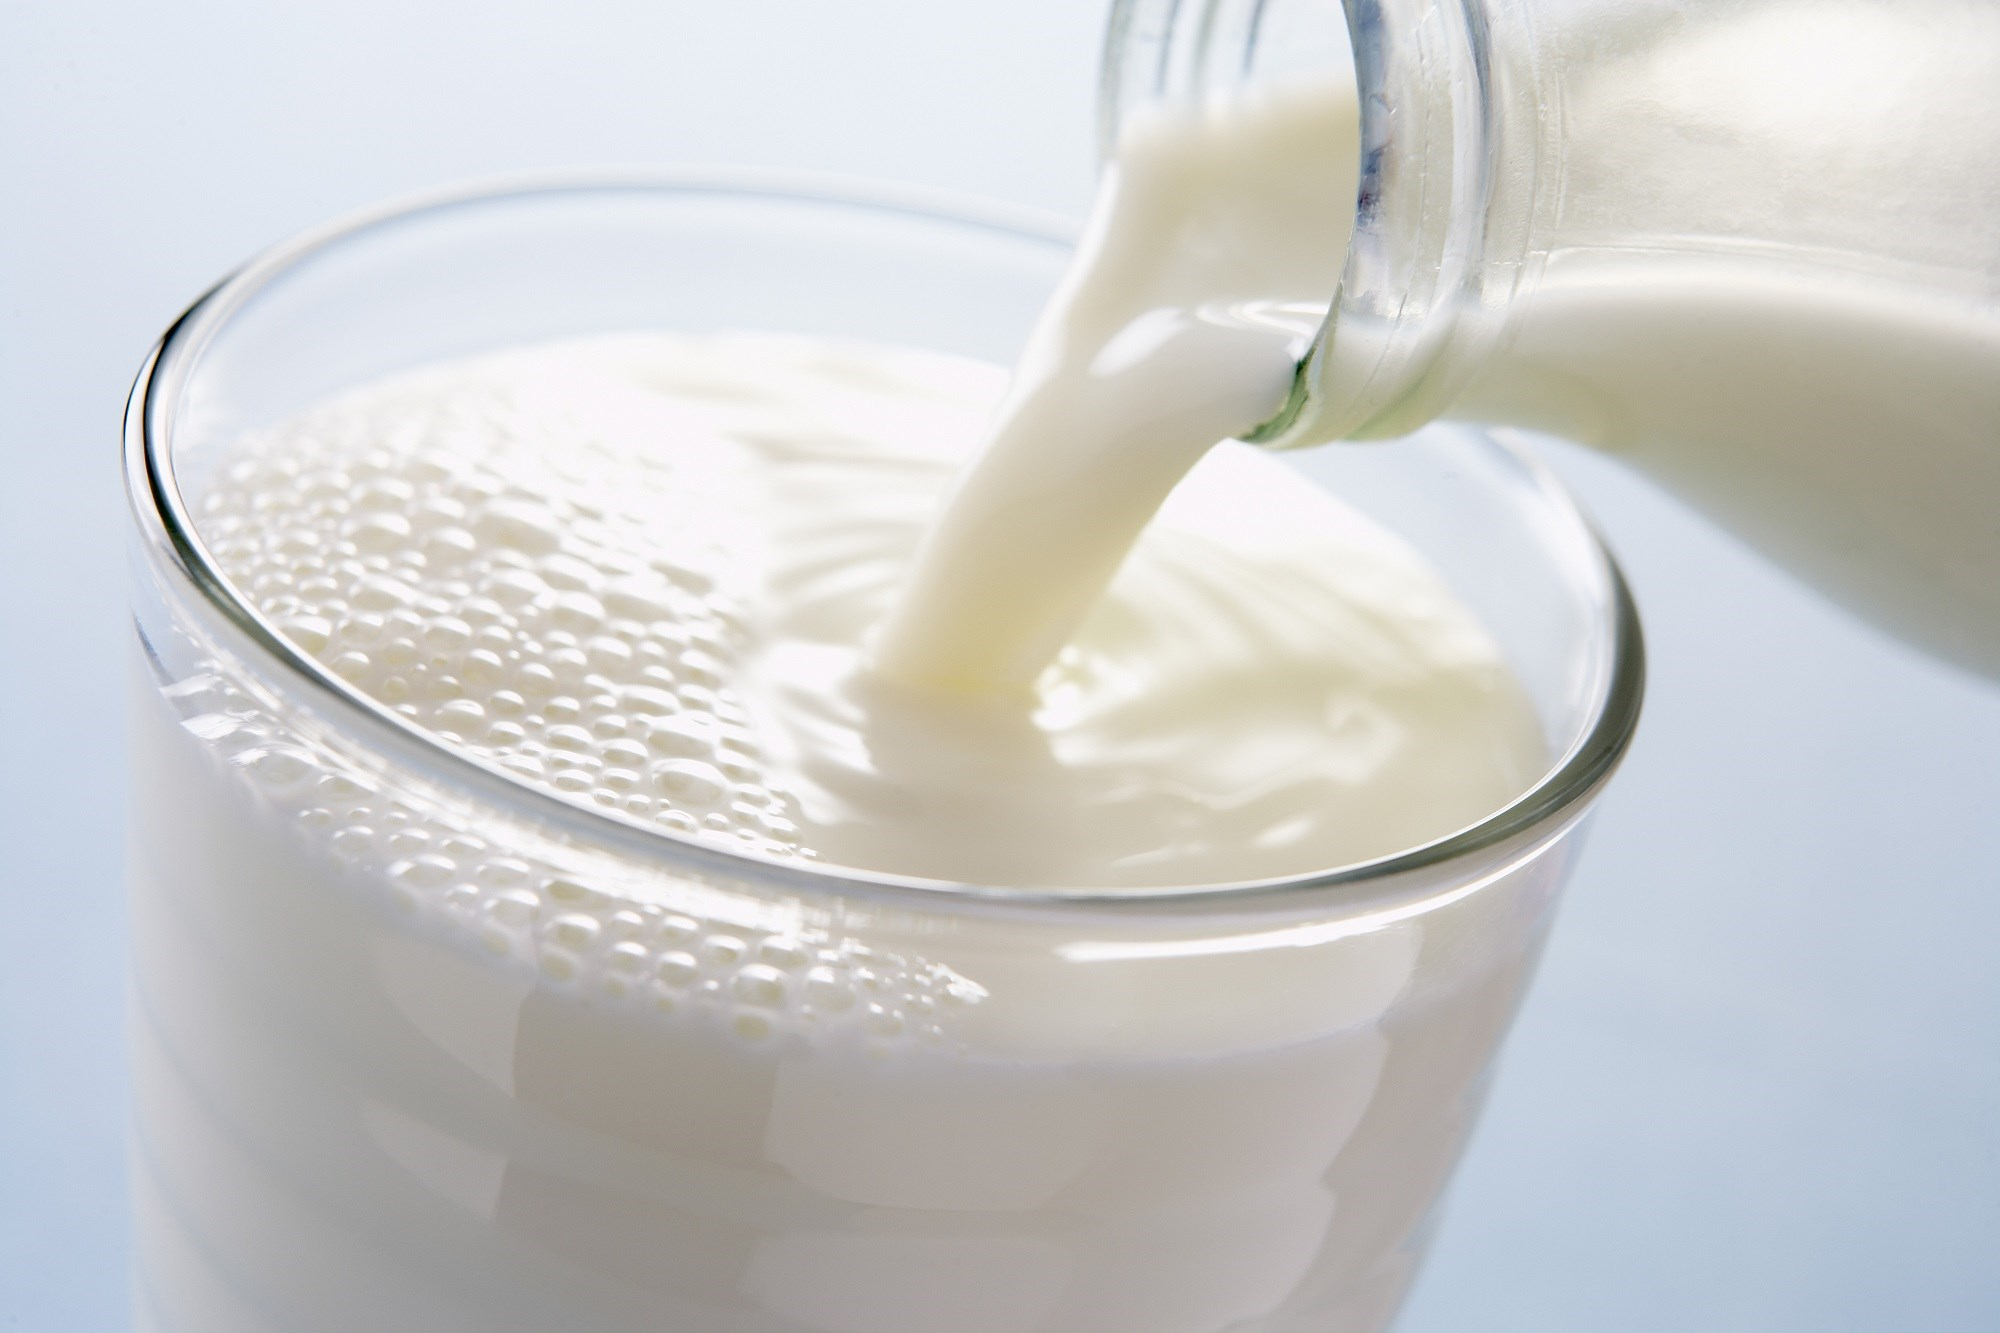 Higher concentrations of fatty acid biomarkers, which partly reflect dairy fat intake, were associated with lower incidence of type 2 diabetes.